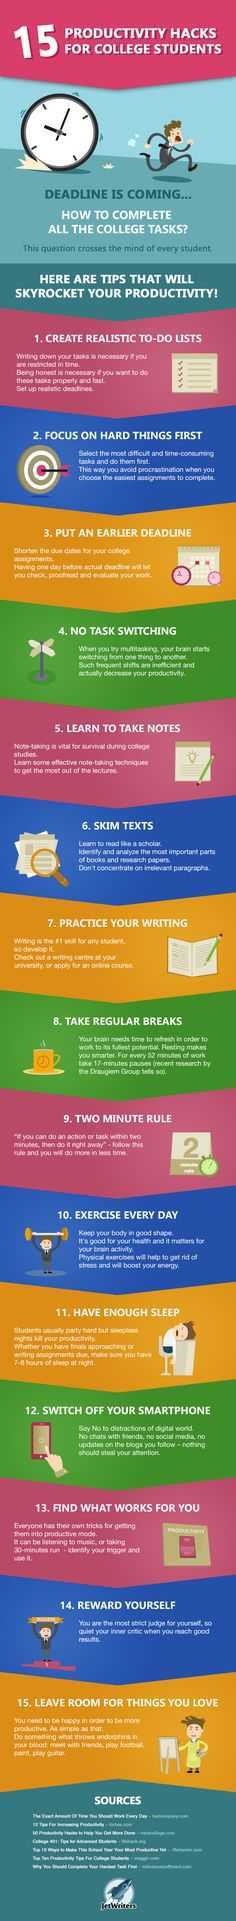 15 Productivity Hacks For College Students #infographic #Hacks #Education